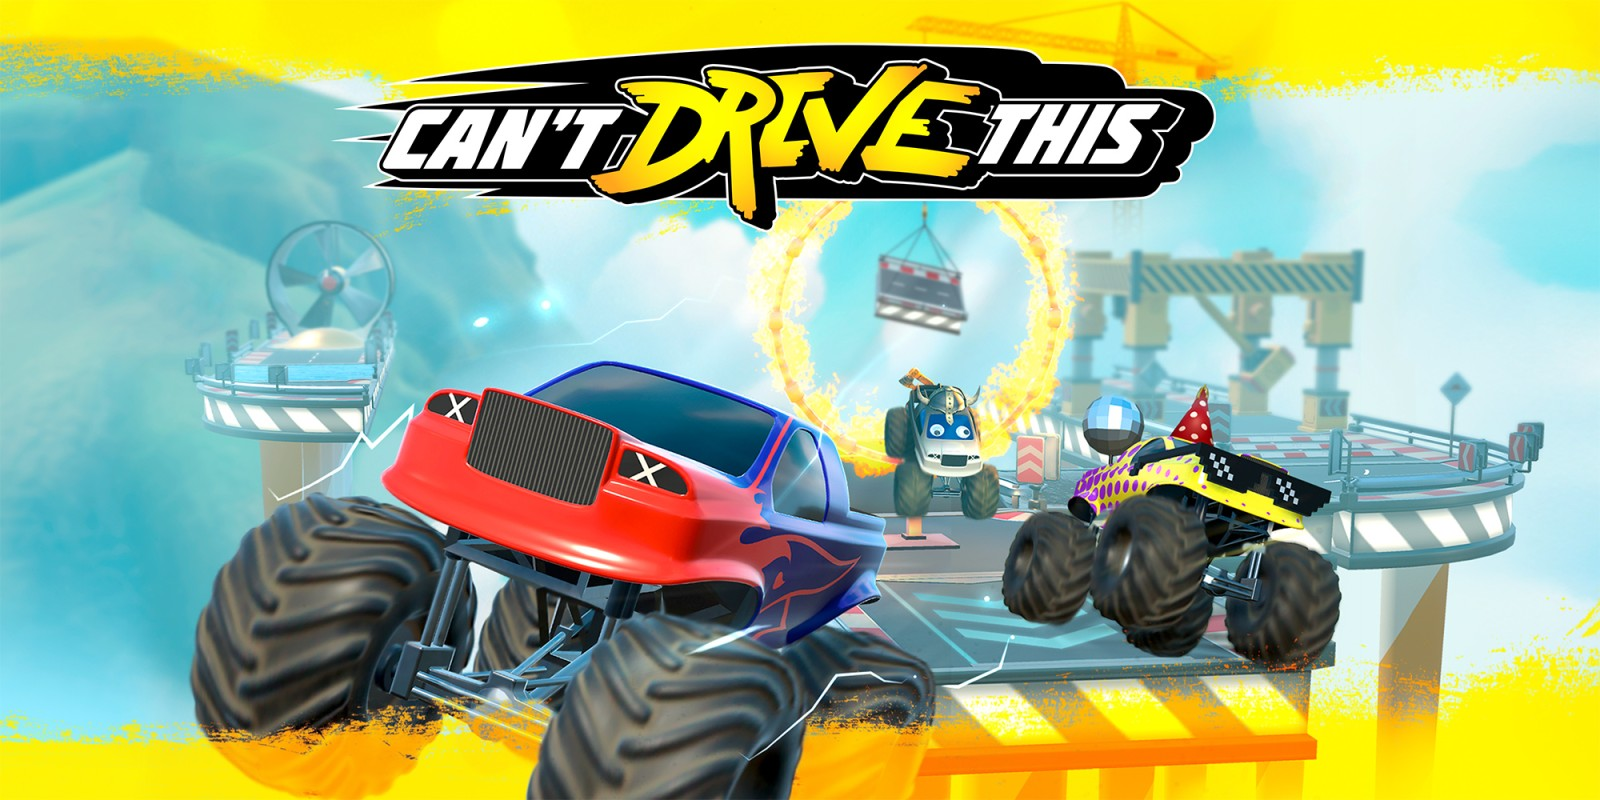 Cant Drive This: Innovative couch co-op racing game put to the test